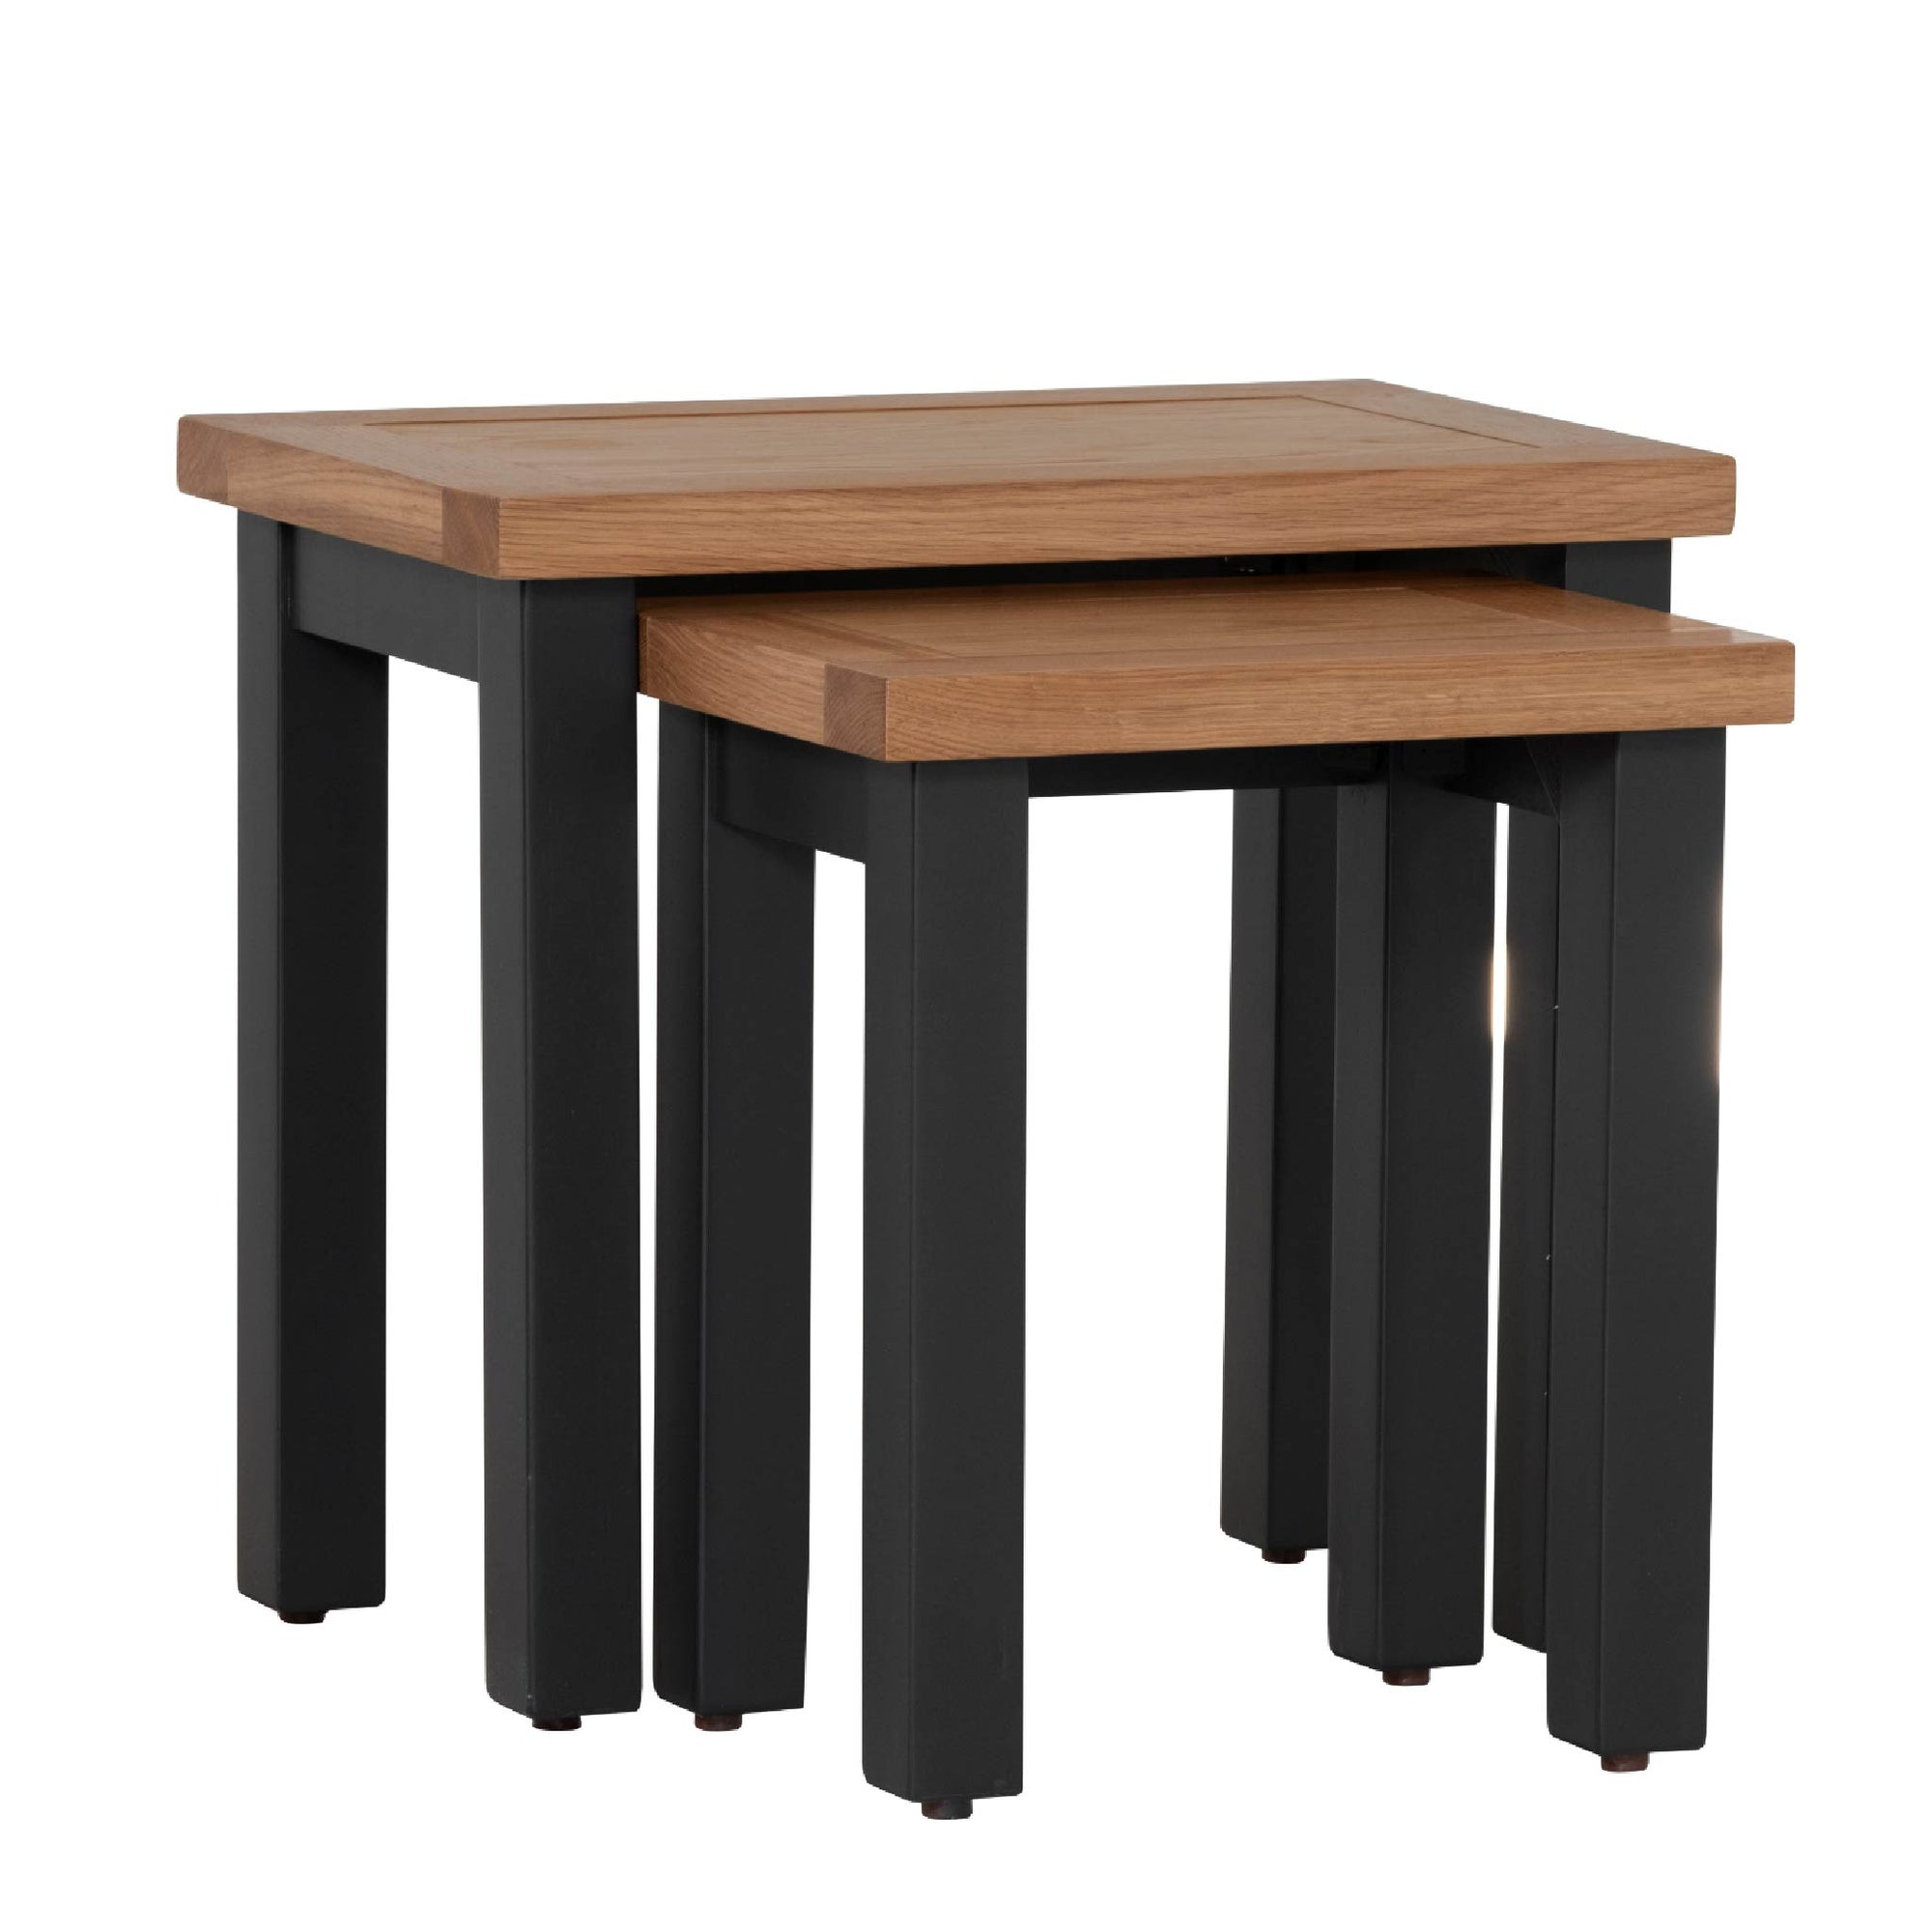 Charlestown Black Set of 2 Nest of Tables by Roseland Furniture